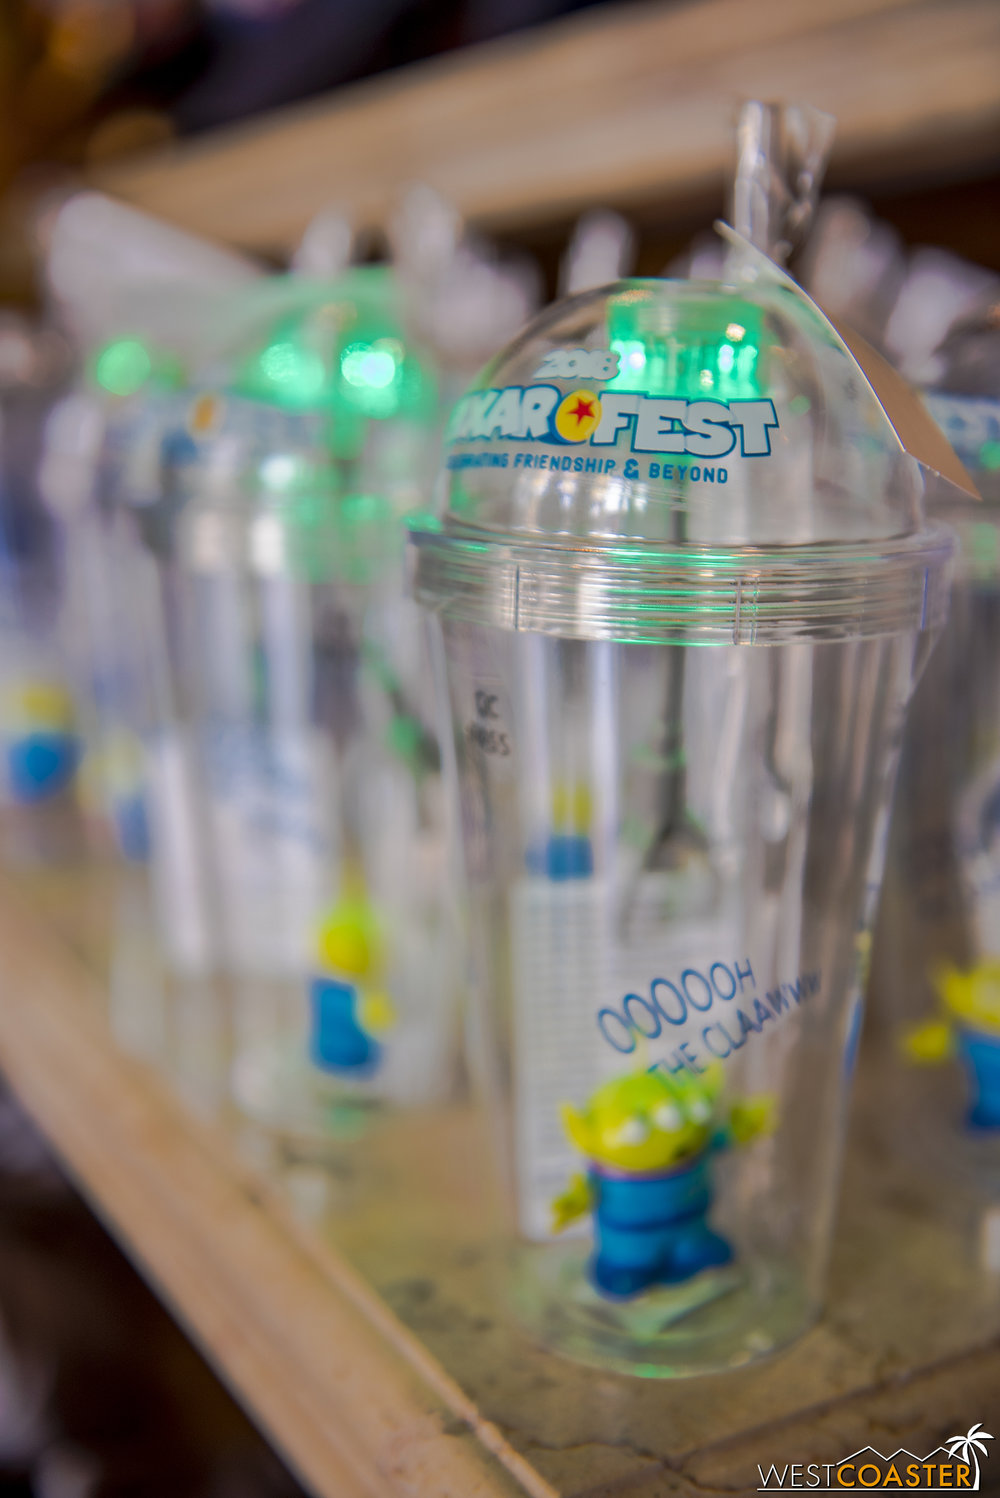 Glowing Little Green Men souvenir sippers…